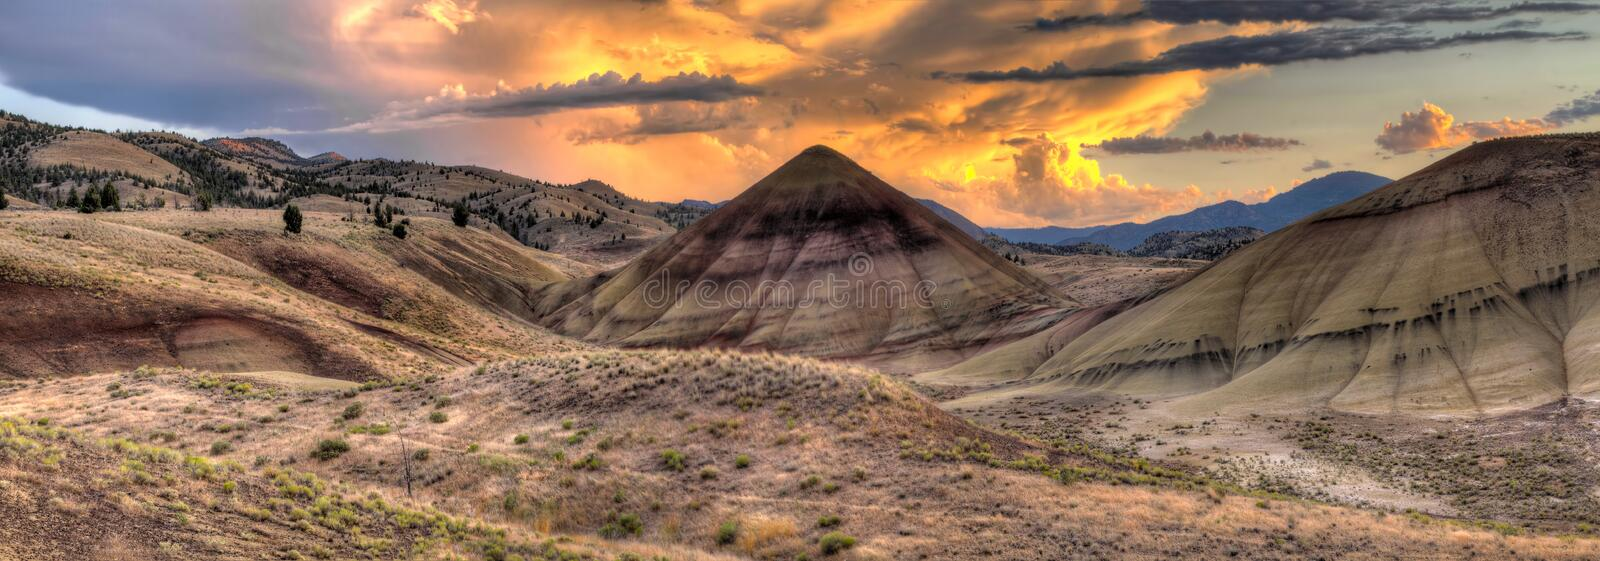 Sunset Over Painted Hills in Oregon stock photography